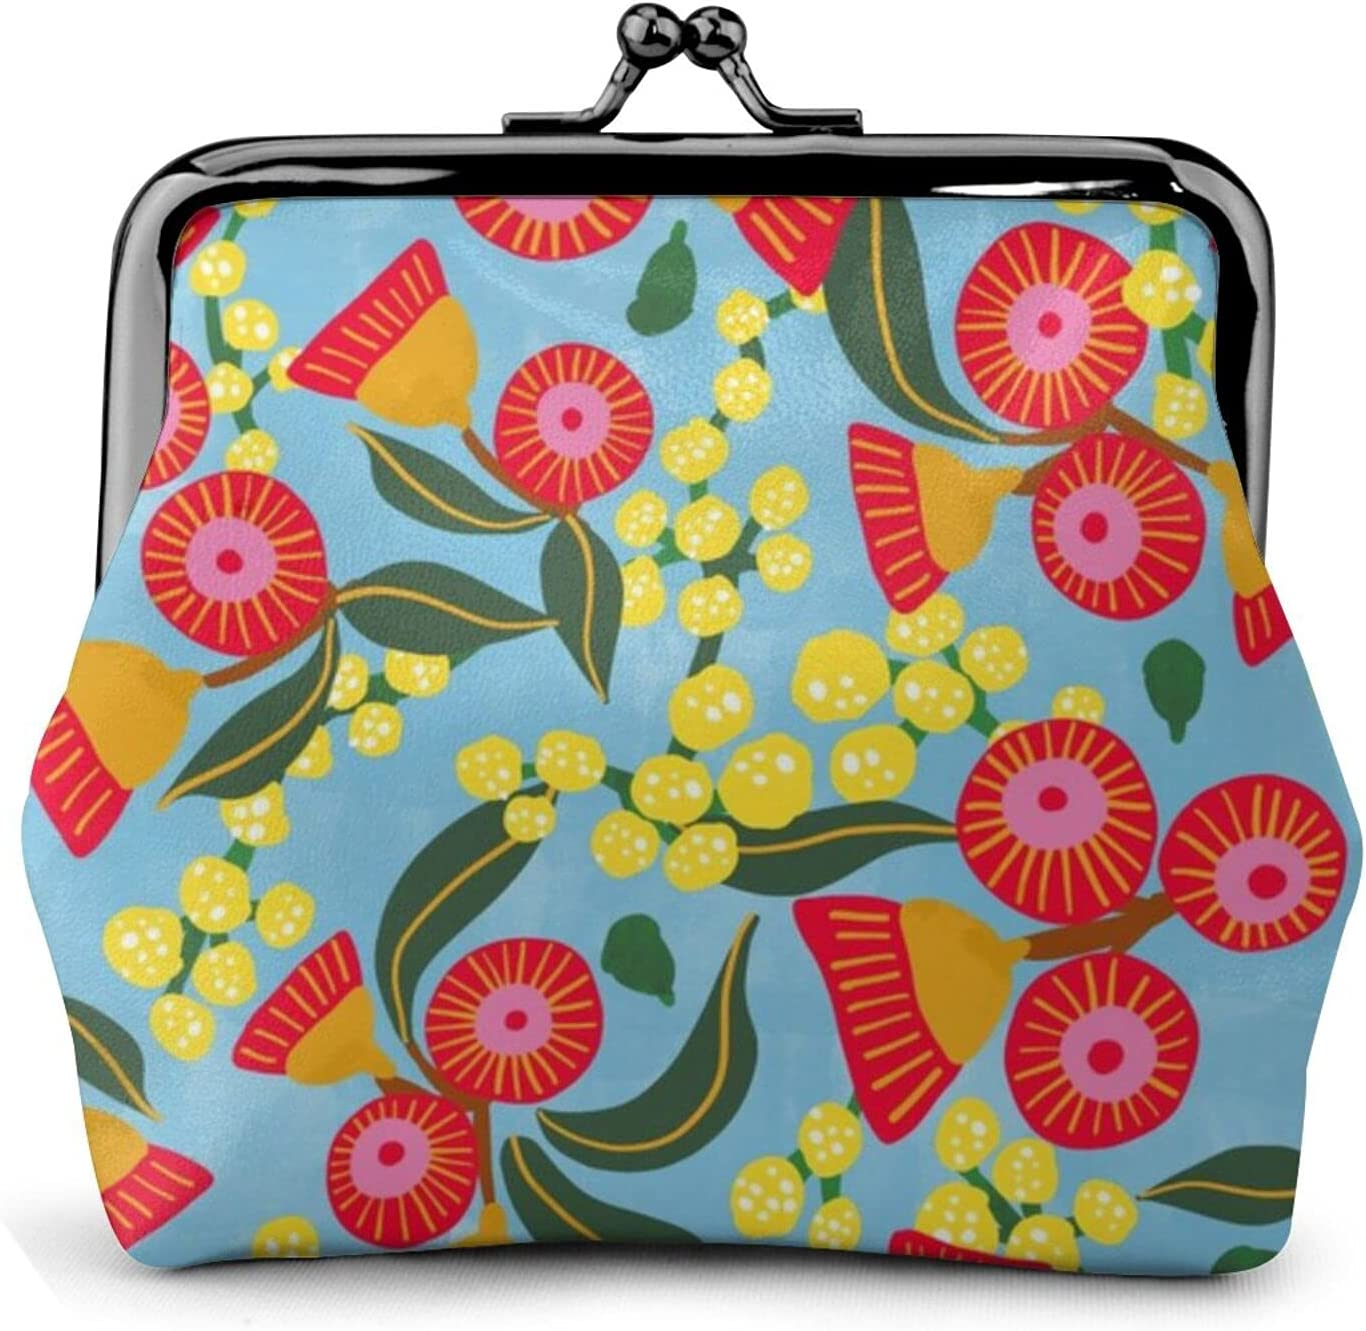 Australian Wattle U 224 Coin Purse Retro Money Pouch with Kiss-lock Buckle Small Wallet for Women and Girls